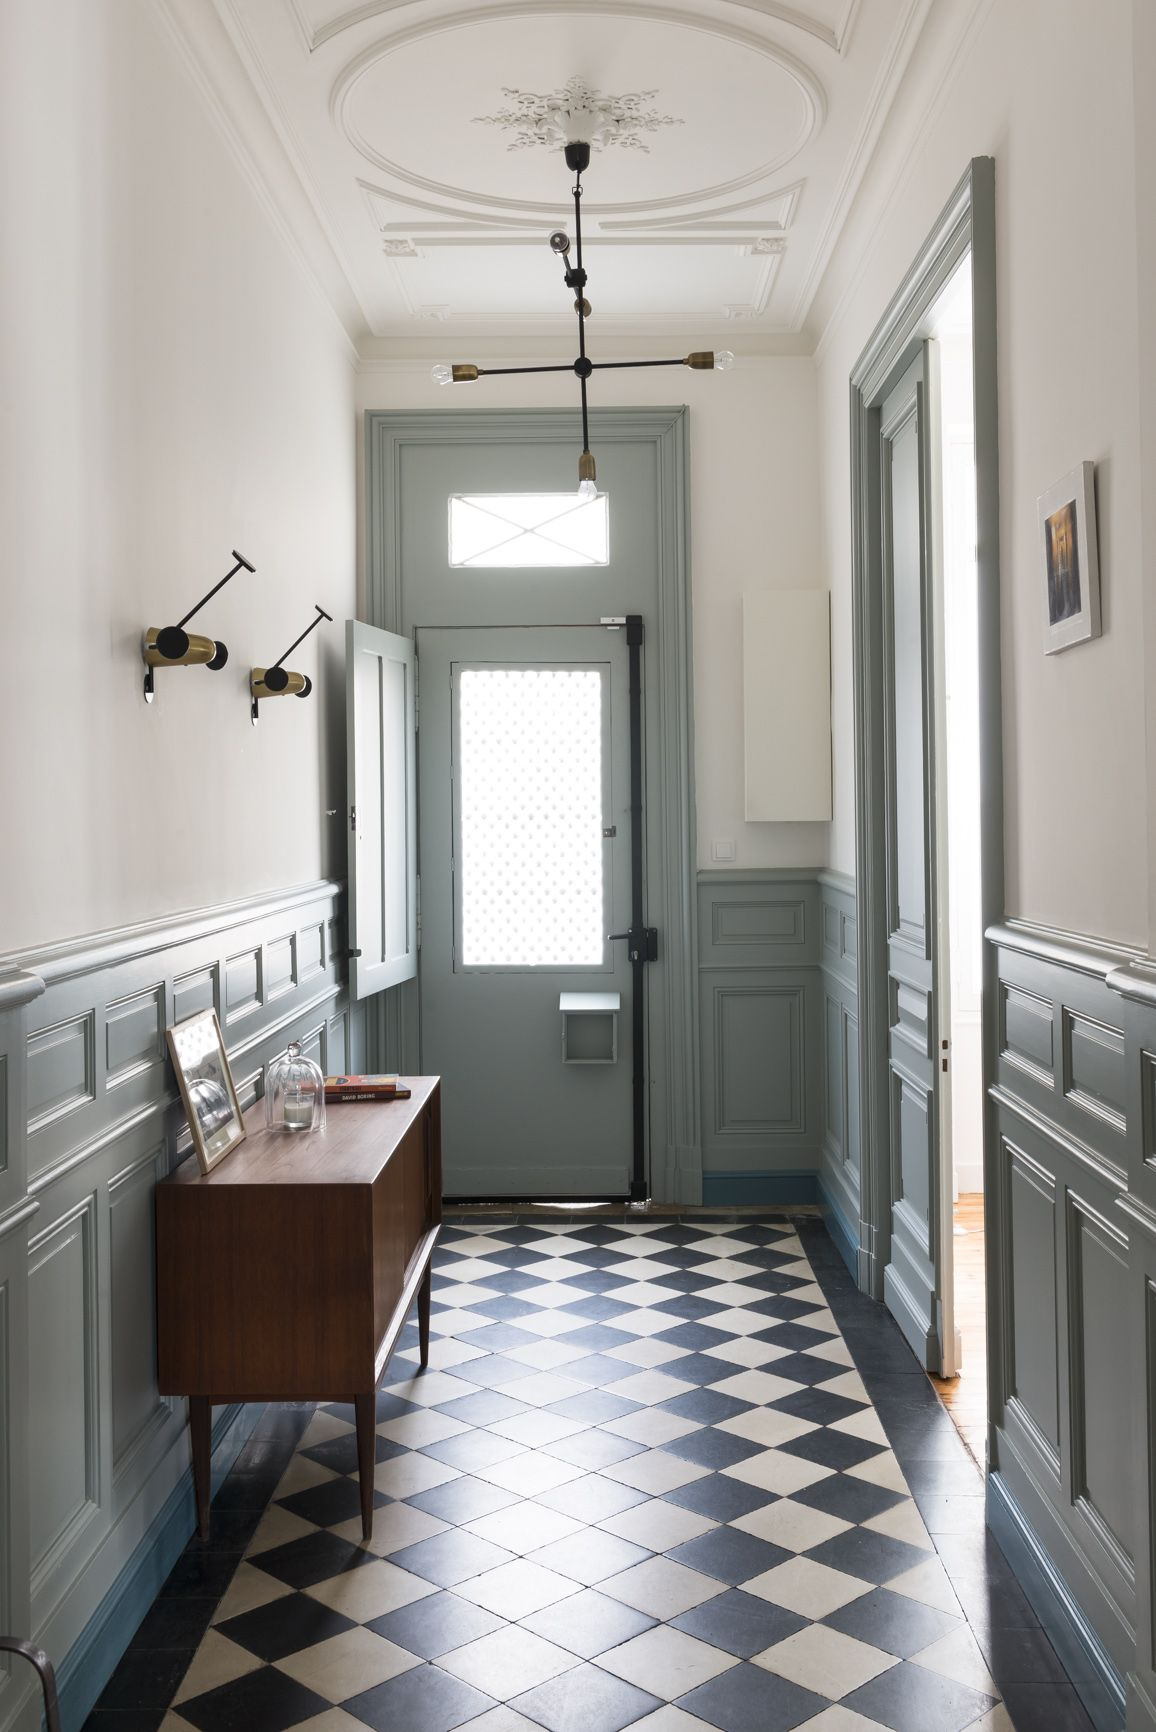 Best 25 maison bourgeoise ideas on pinterest boiseries for Decoration couloir de maison